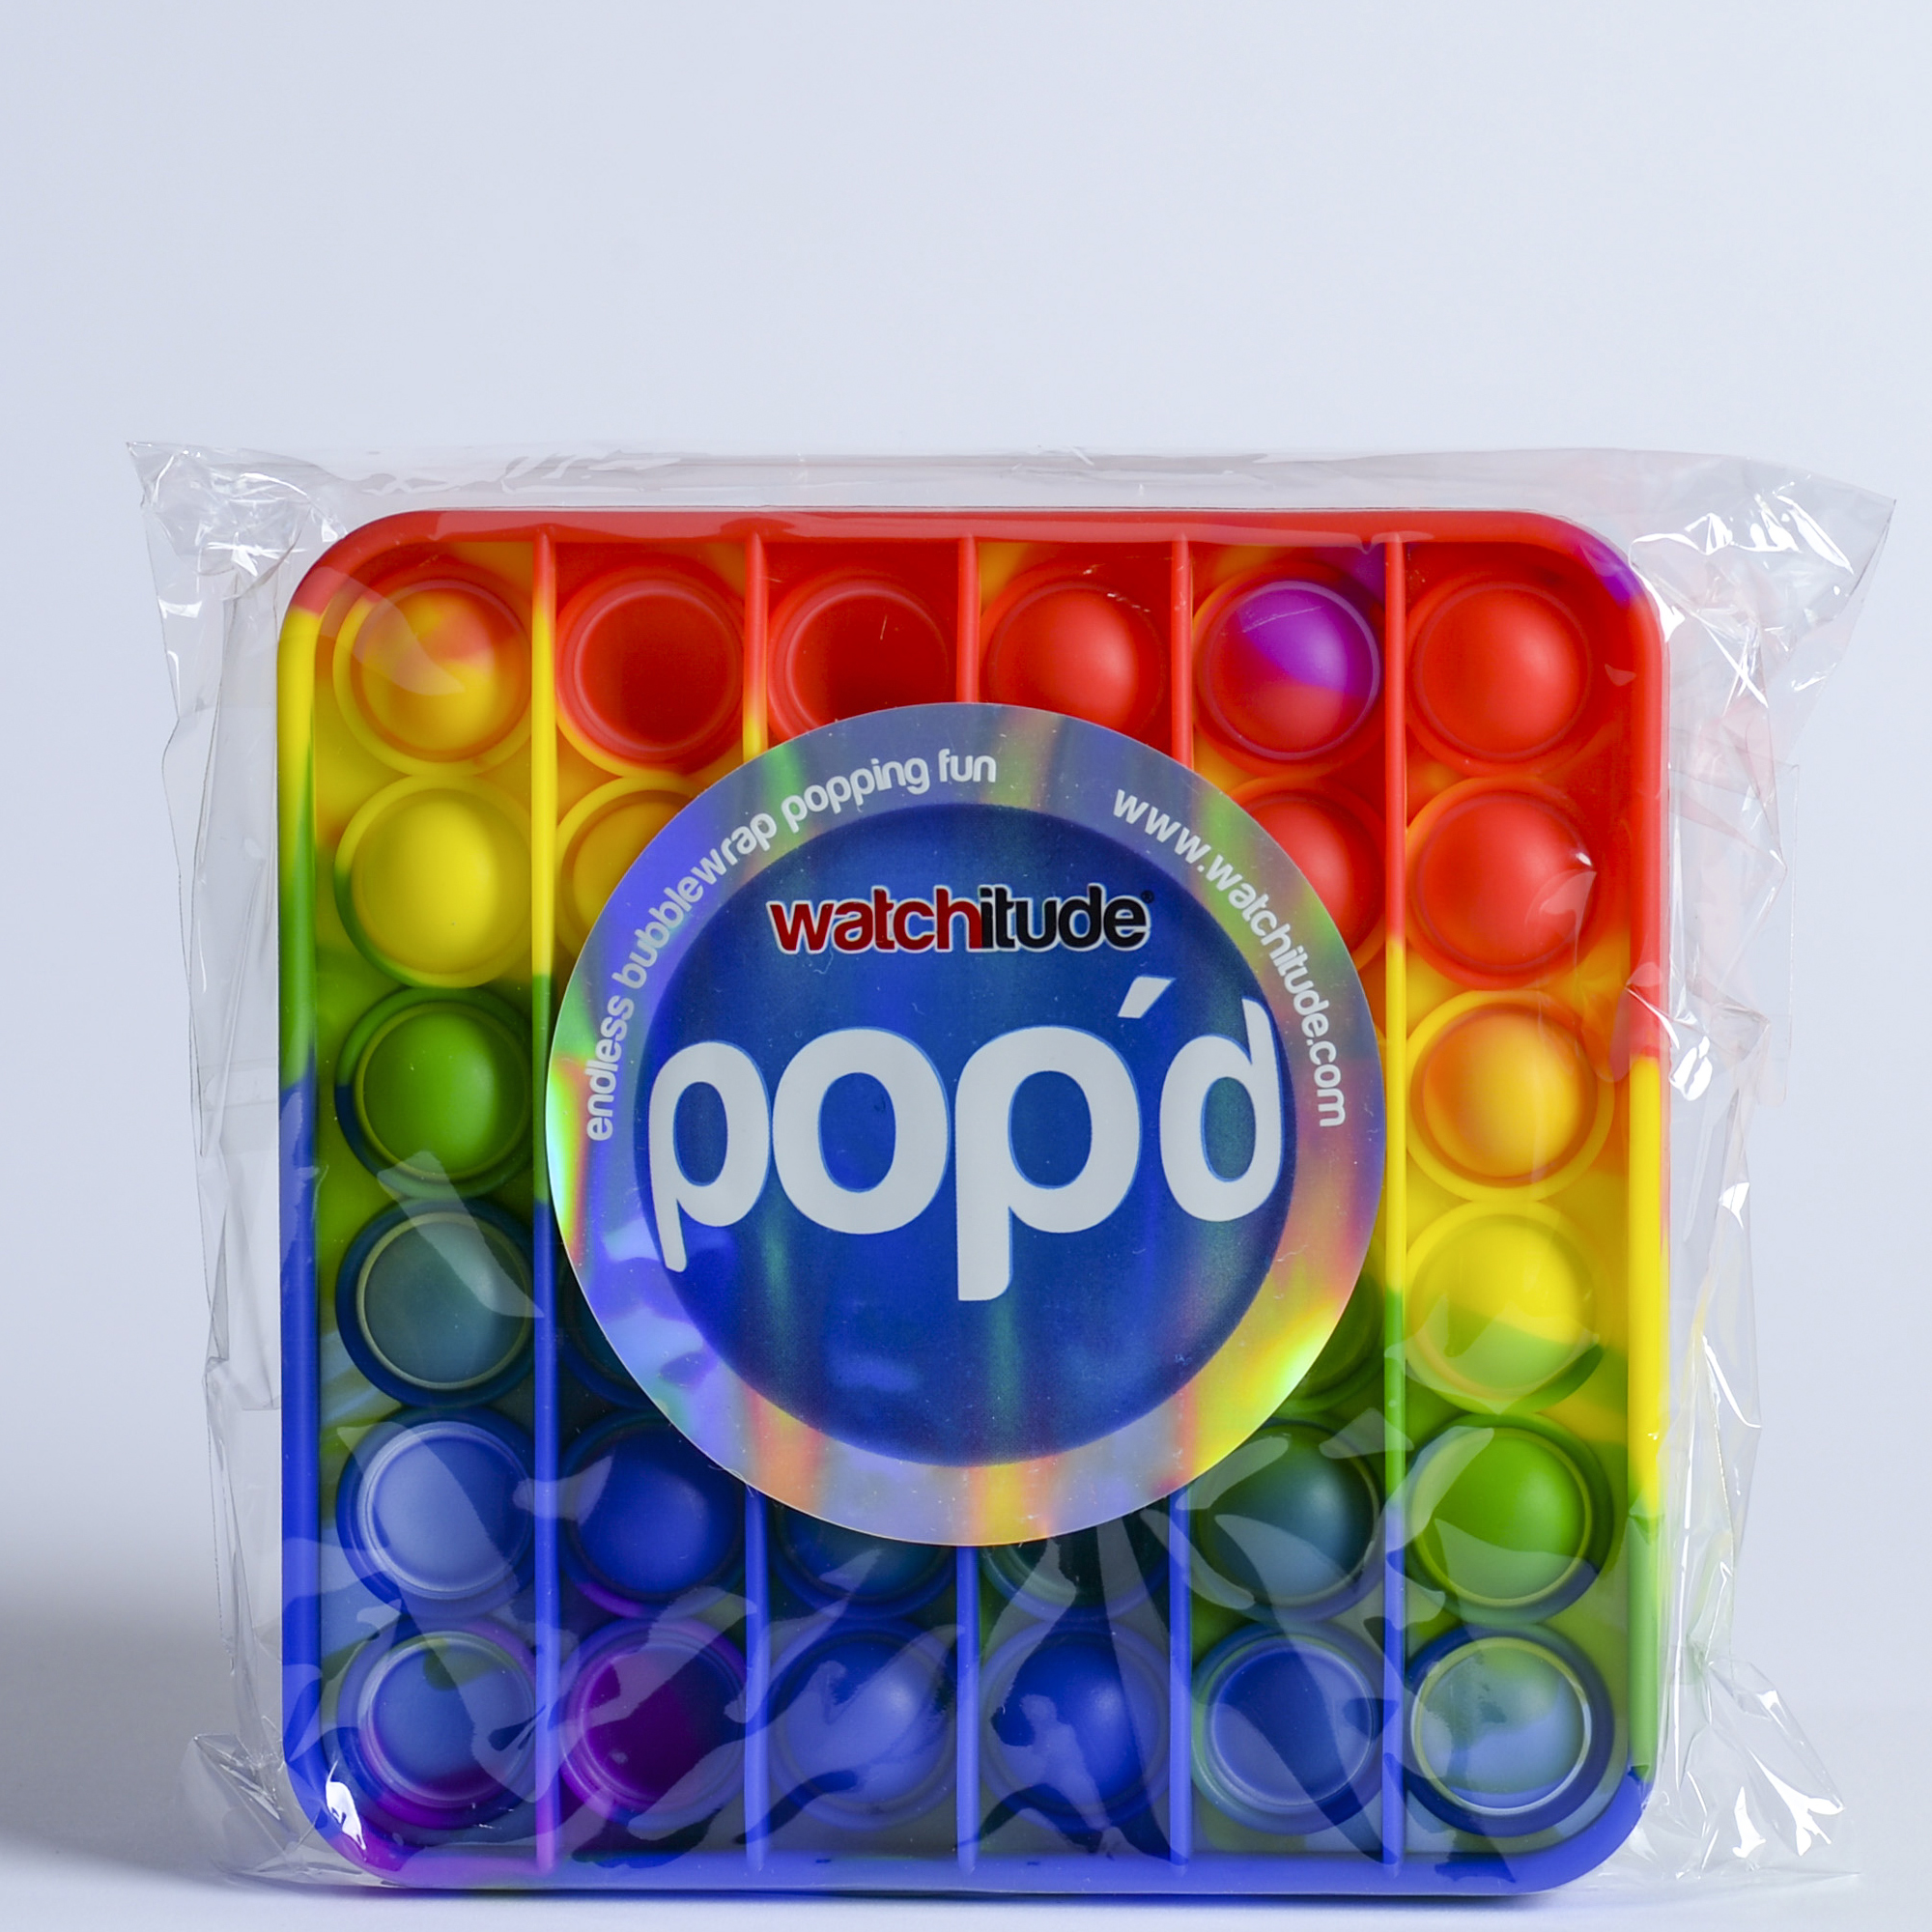 Rainbow Square - POP'd by Watchitude - Bubble Popping Toy